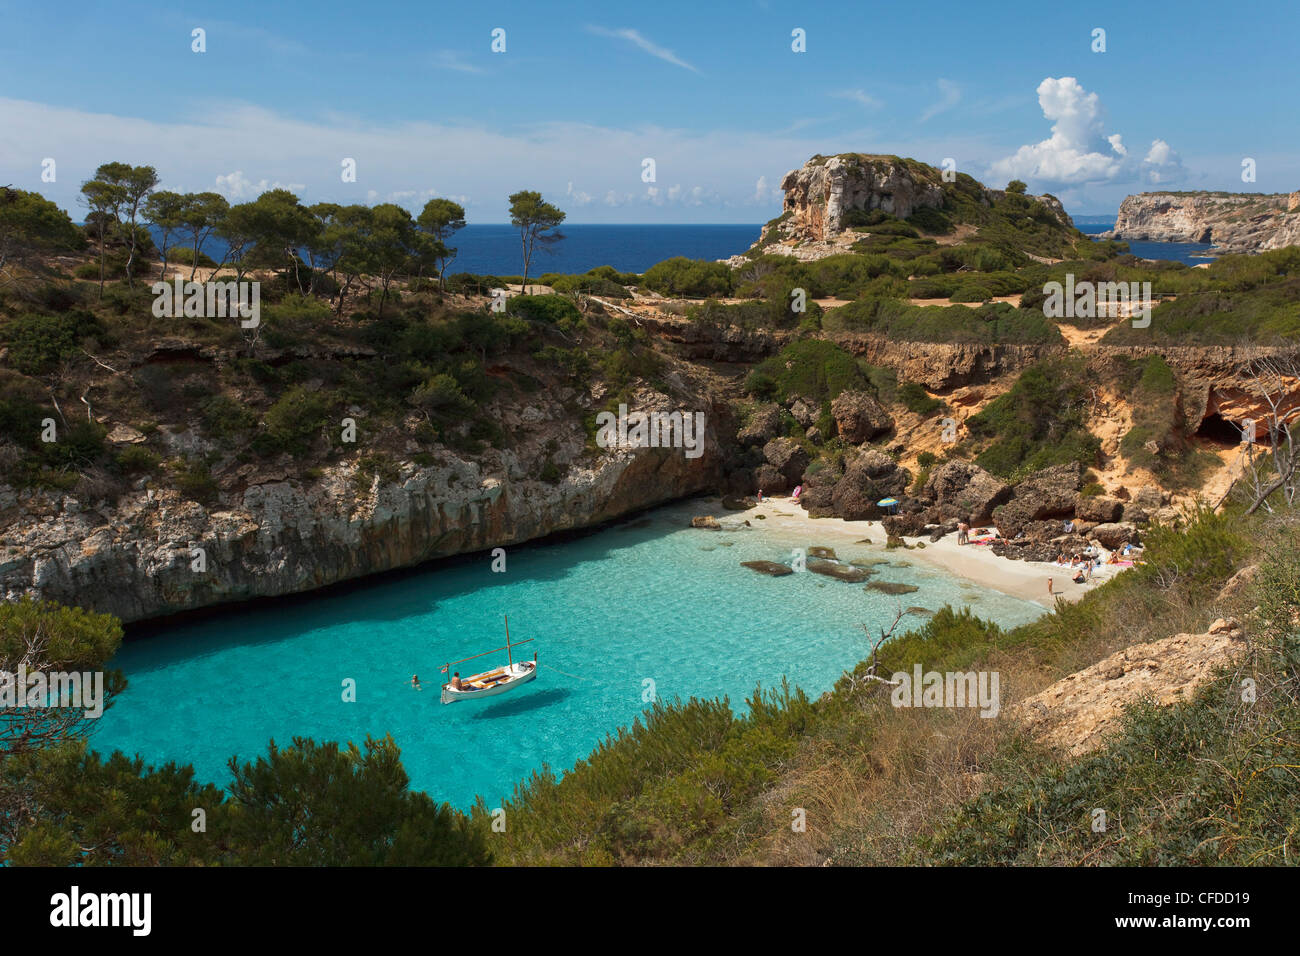 Calo  d es Moro, nearby Cala S Amonia, near Santanyi, Mallorca, Balearic Islands, Spain, Europe - Stock Image